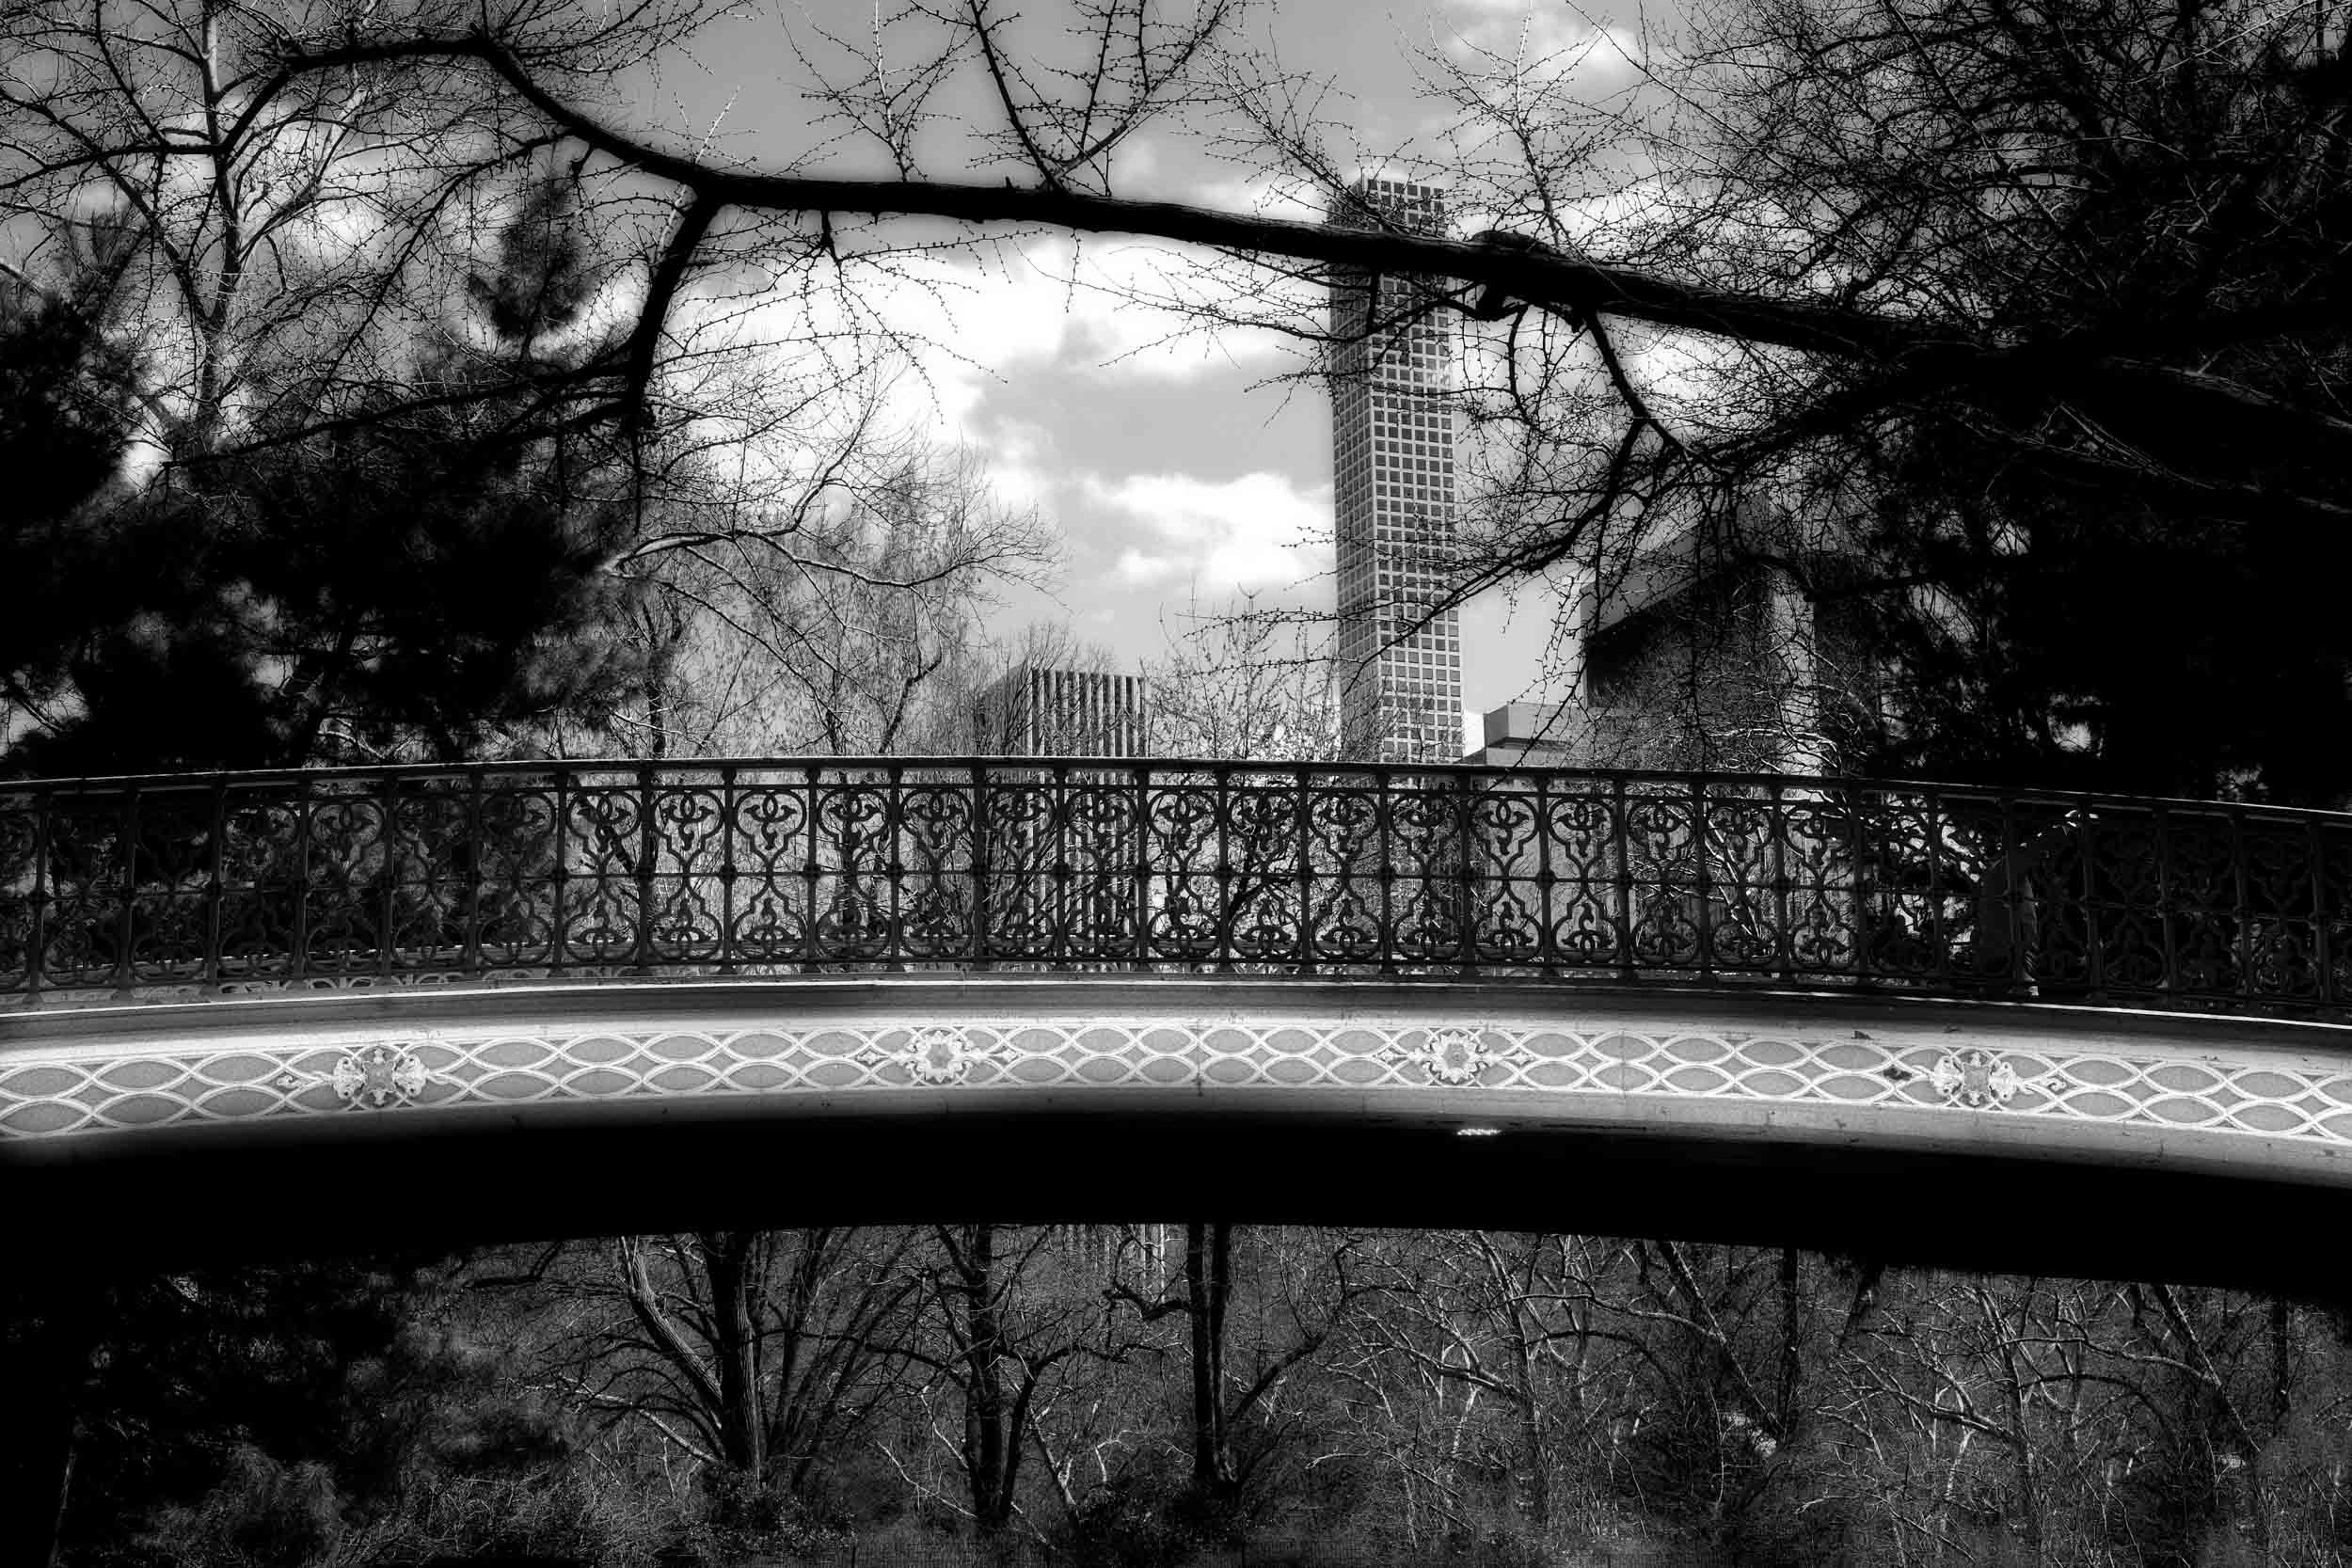 Pine Bank Arch, Central Park, NYC